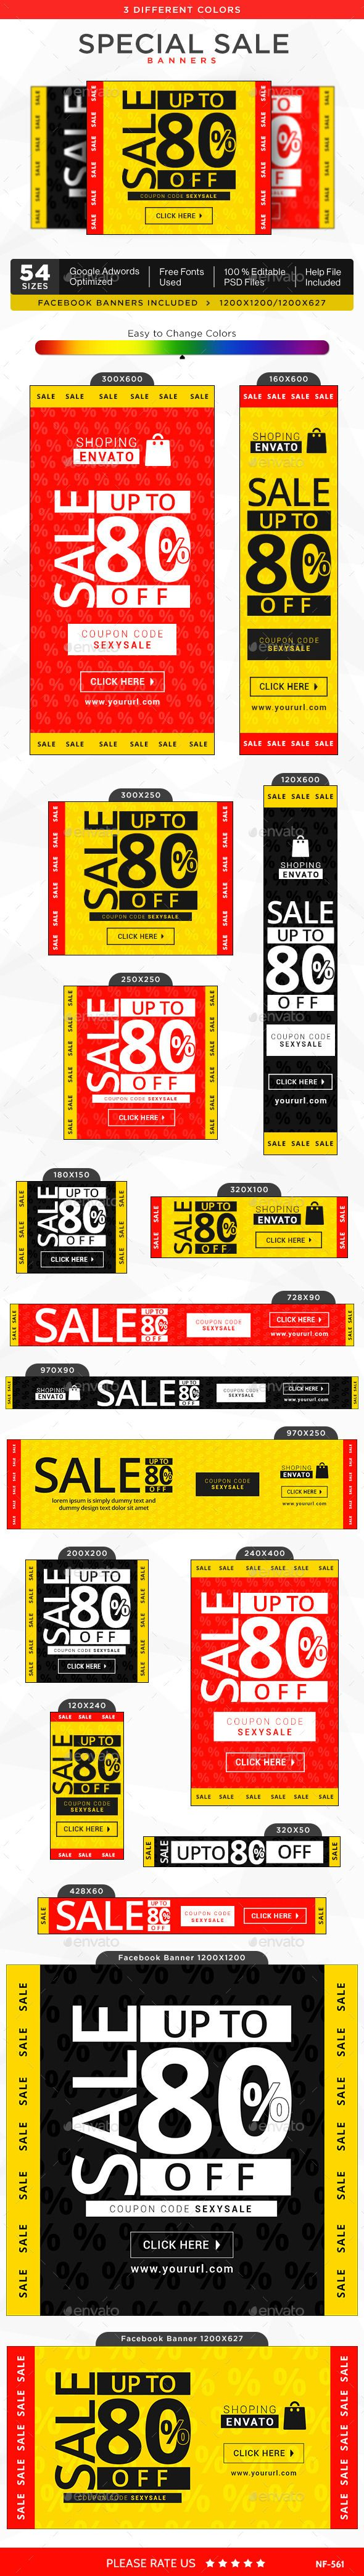 Special Sale Banners Template #design Download: http://graphicriver.net/item/special-sale-banners/12411346?ref=ksioks